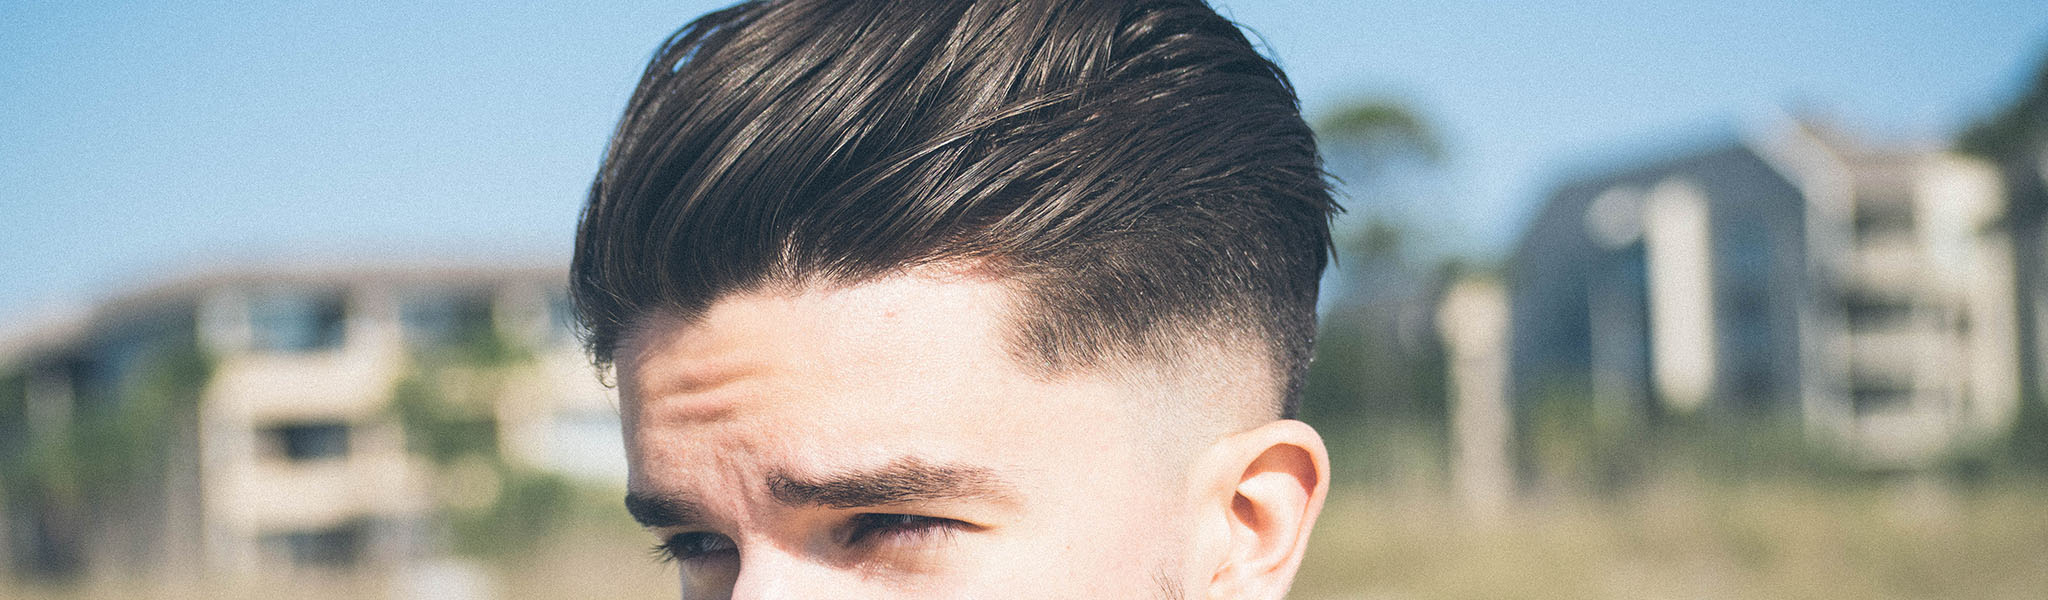 MEN'S HAIR TRENDS FOR SUMMER 2017